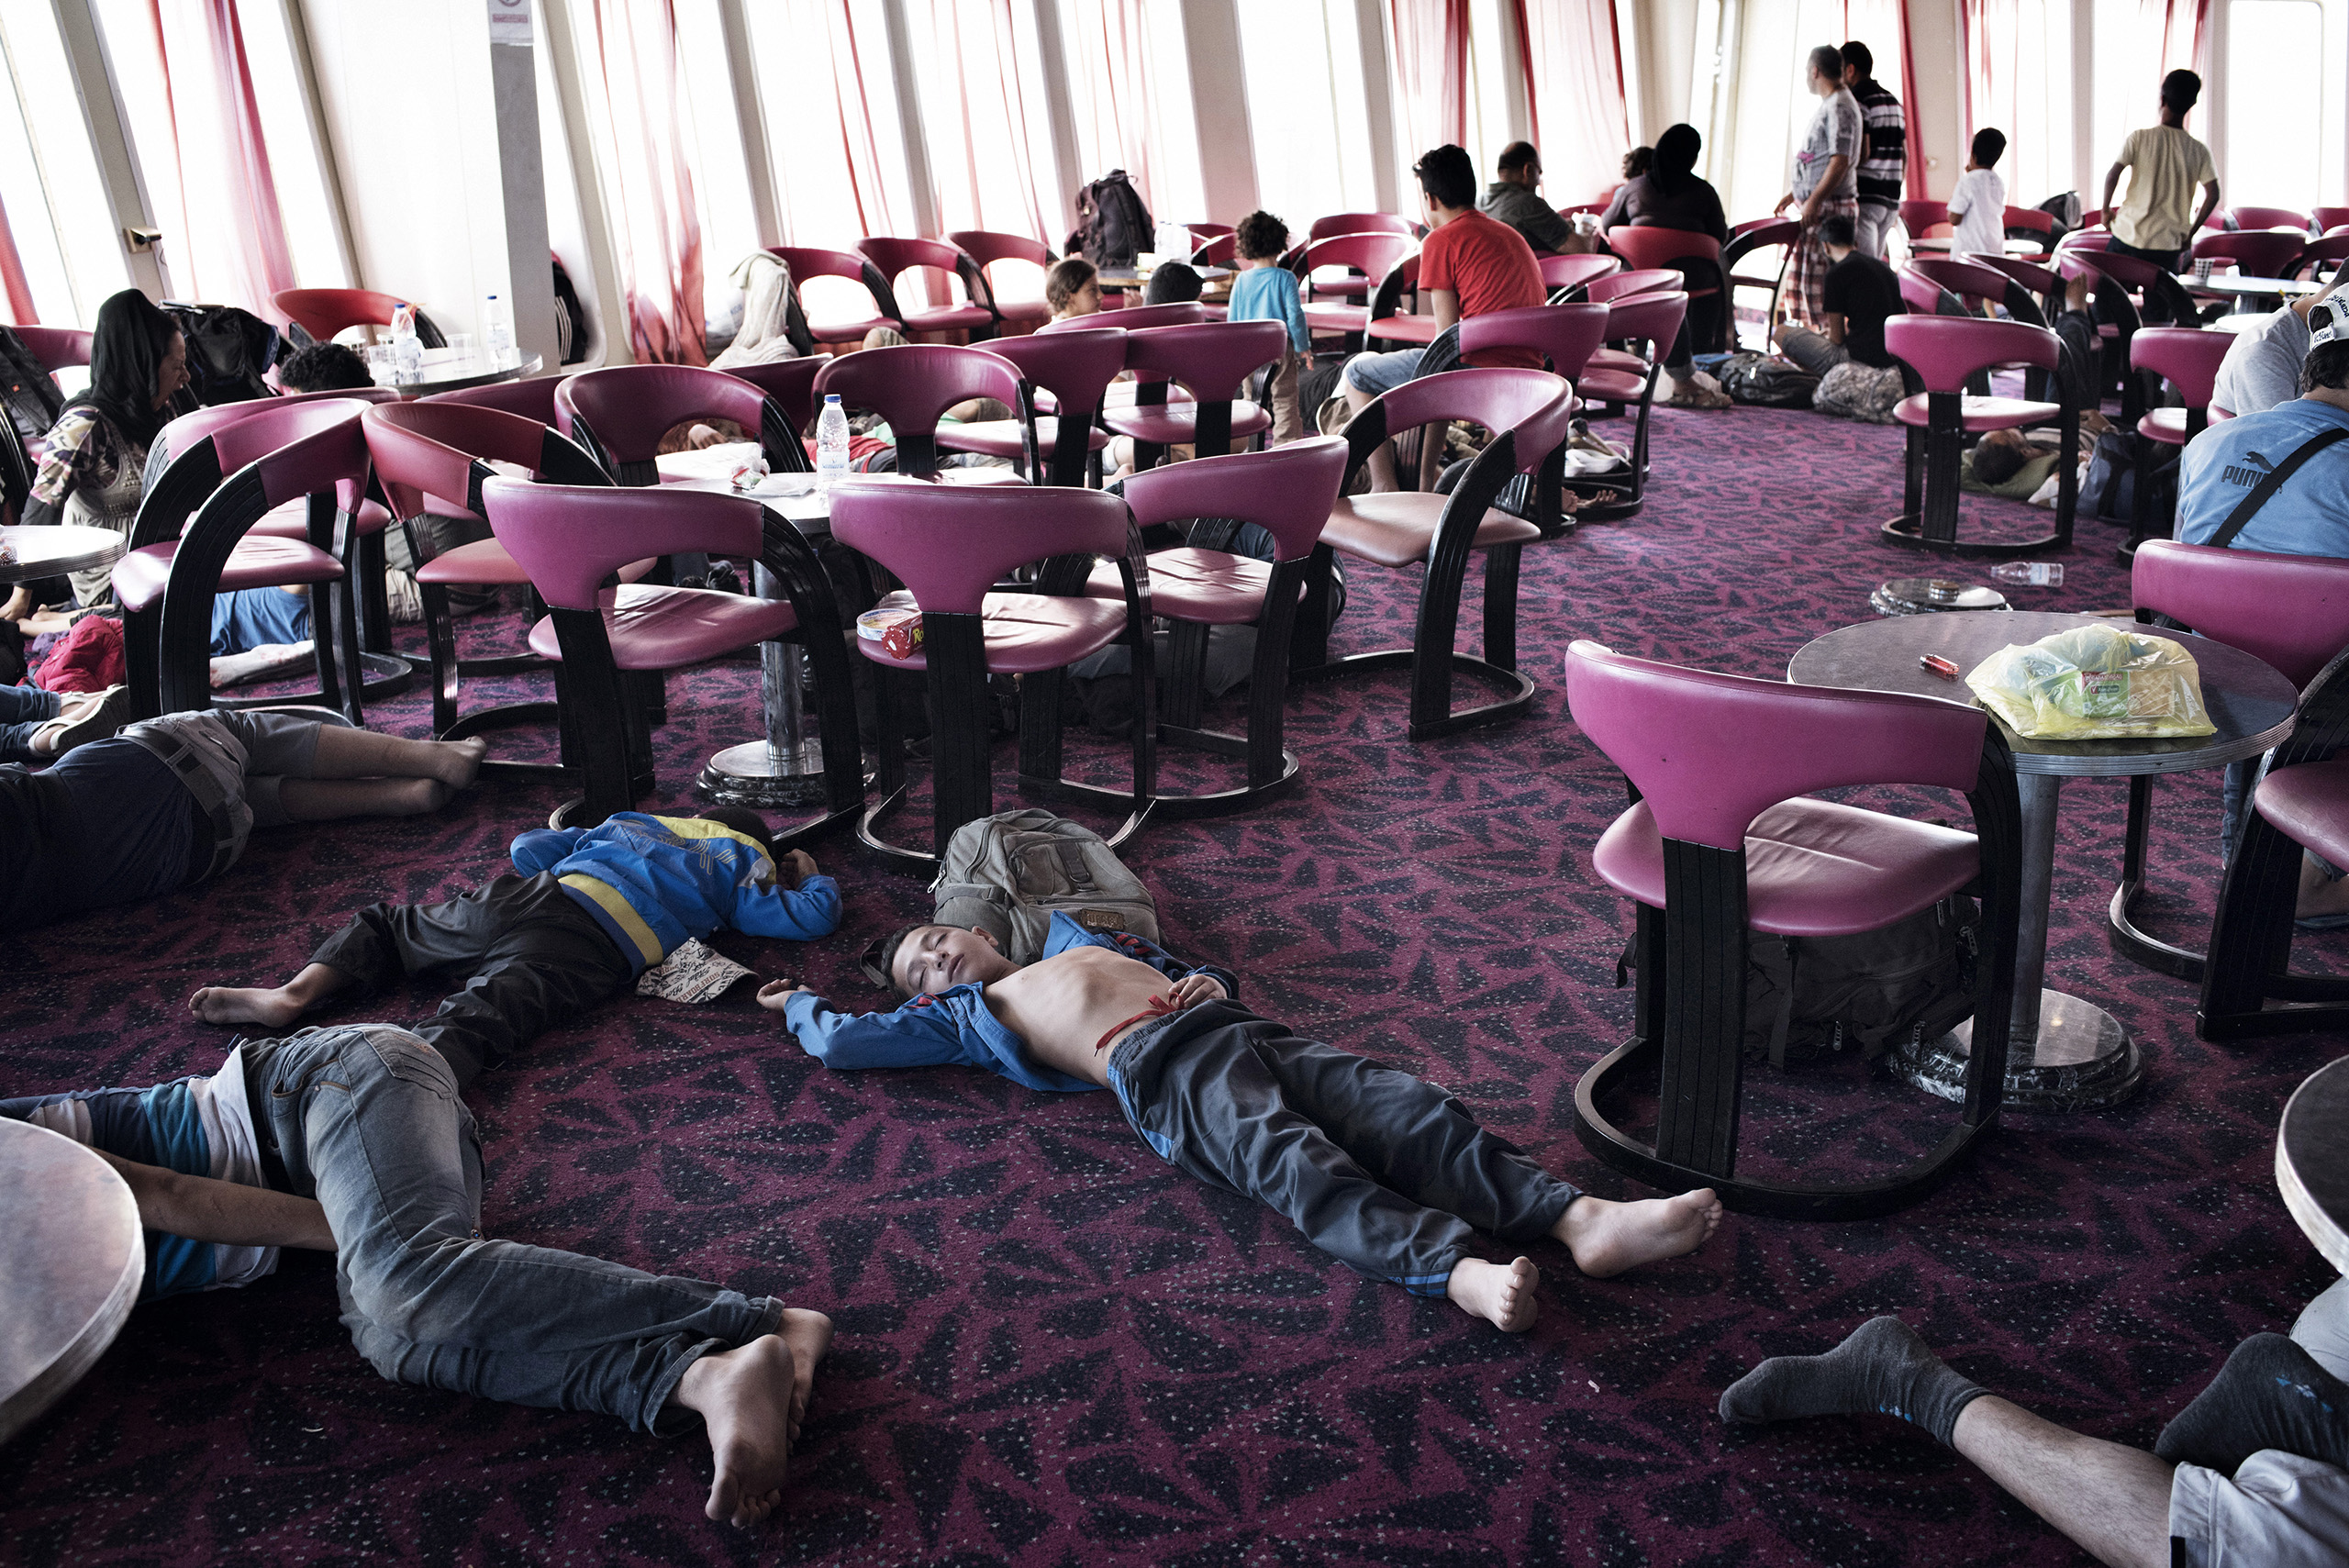 Migrants rest and recharge their phones aboard a cruise ship that the Greek government chartered to transport them to Athens from the Greek island of Lesbos. The regular ferry service traveling this route was unable to cope with the unprecedented influx of migrants going through Greece to Western Europe from various conflict zones across the Muslim world.